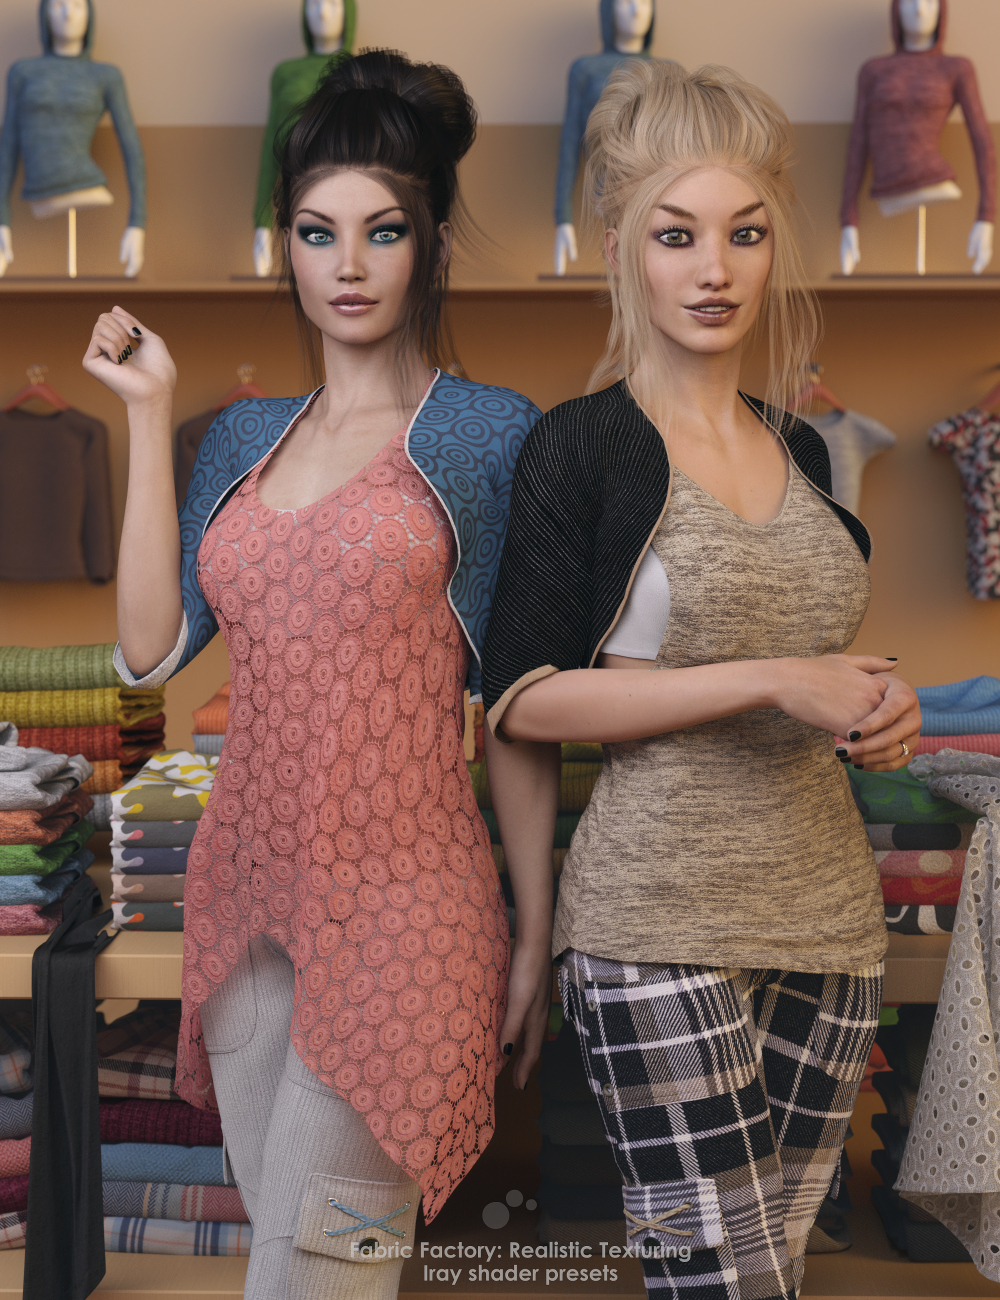 Fabric Factory: Realistic Texturing - Iray Shader Presets by: valzheimer, 3D Models by Daz 3D